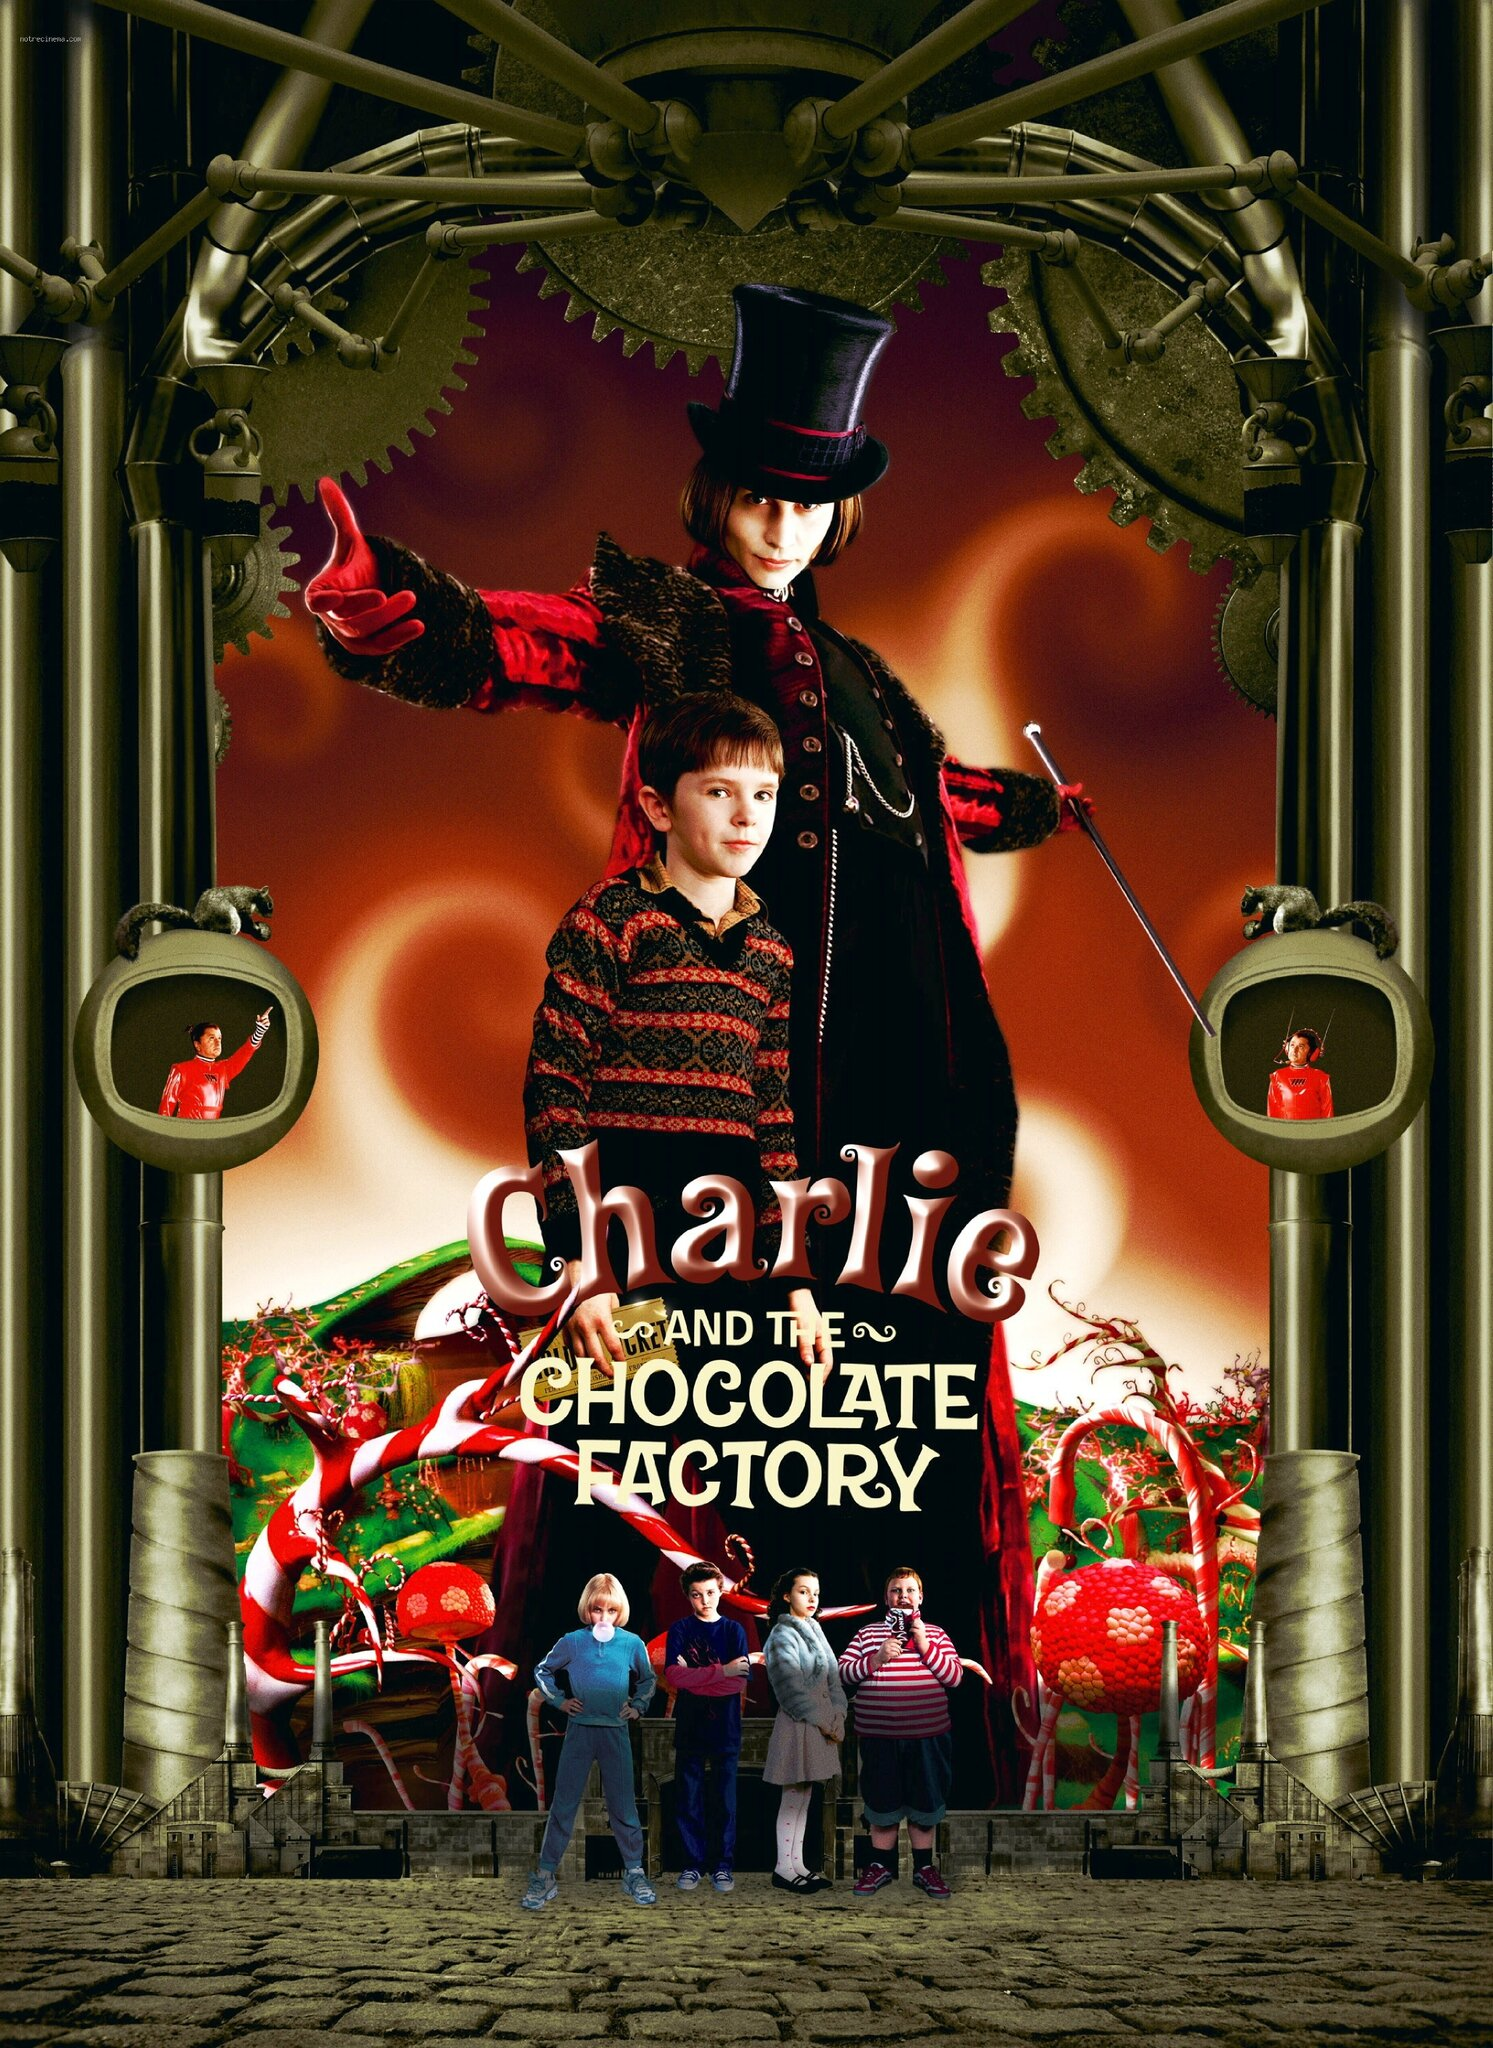 Charlieand The Chocolate Factory Charlie